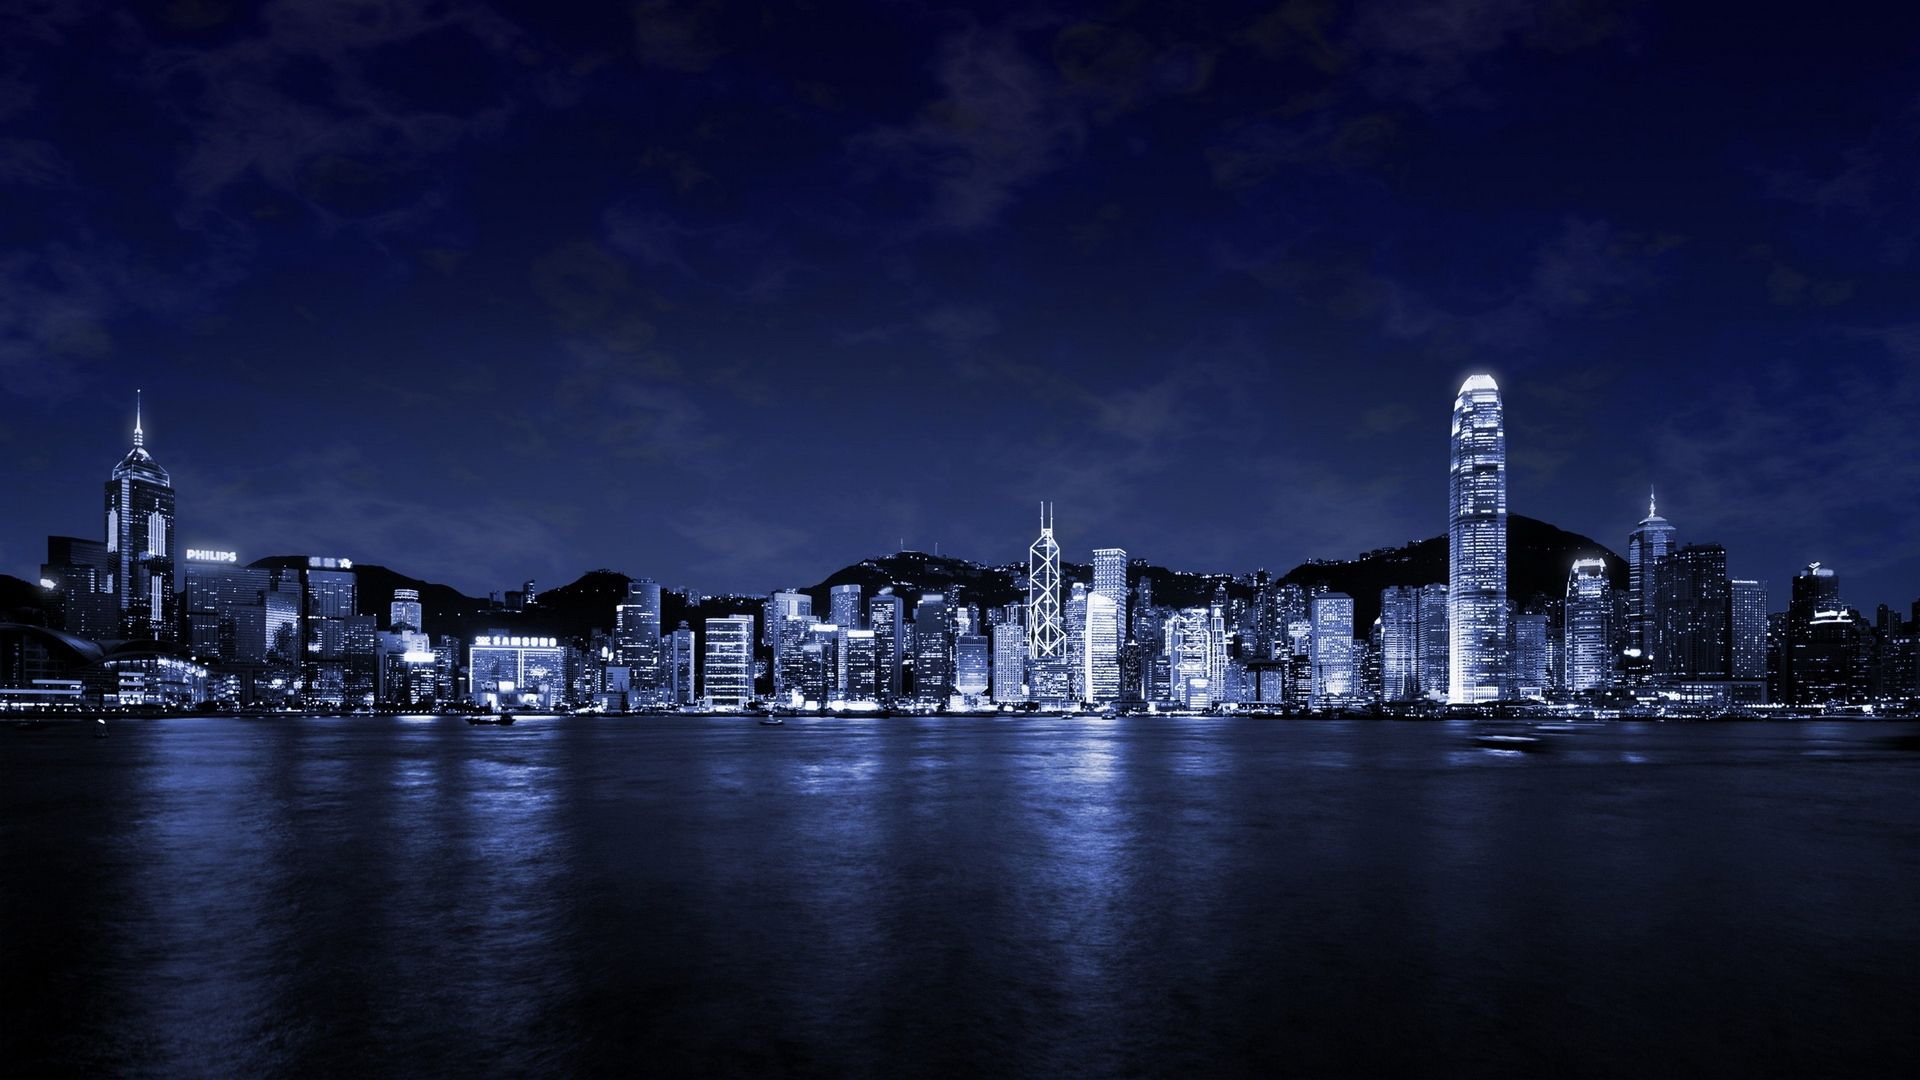 Night City Wallpapers Desktop